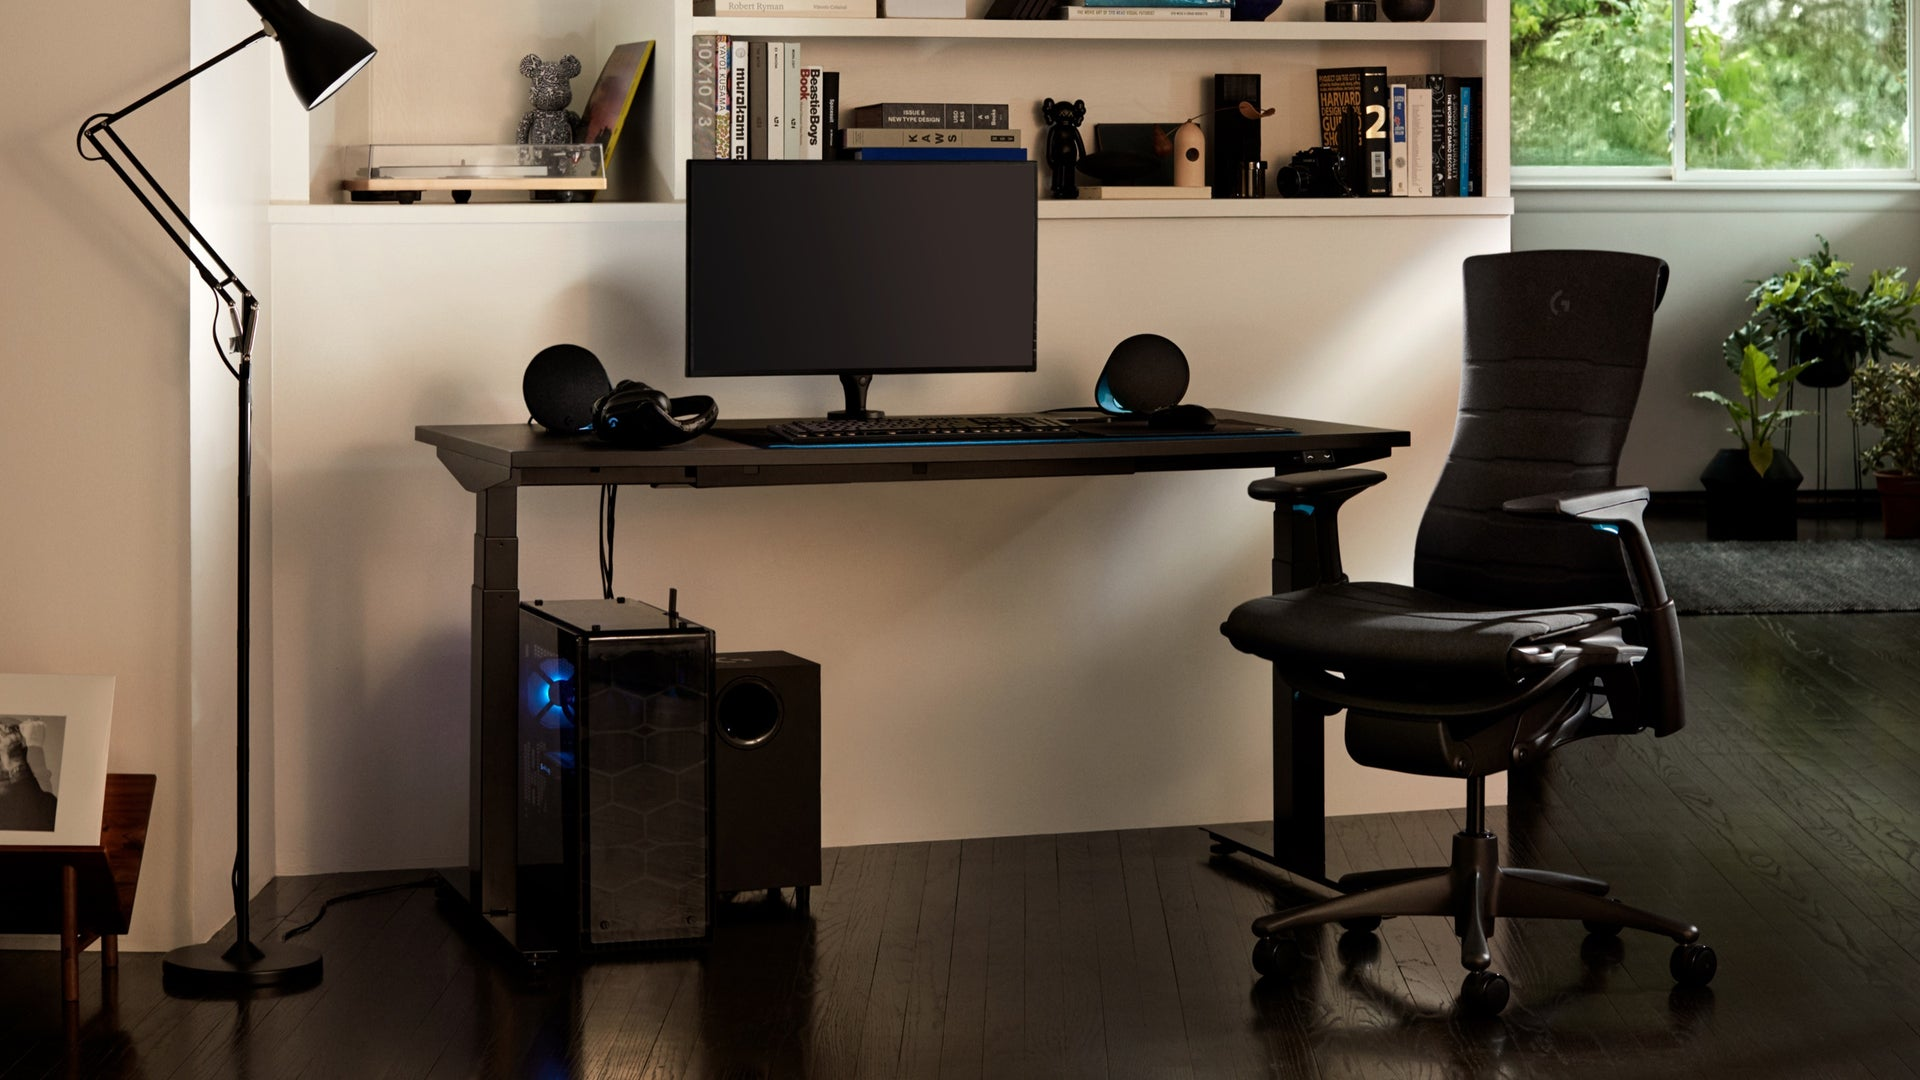 A residential setting features the full setup, including the Embody Gaming Chair, Ollin Monitor Arm, and Nevi Gaming Desk.